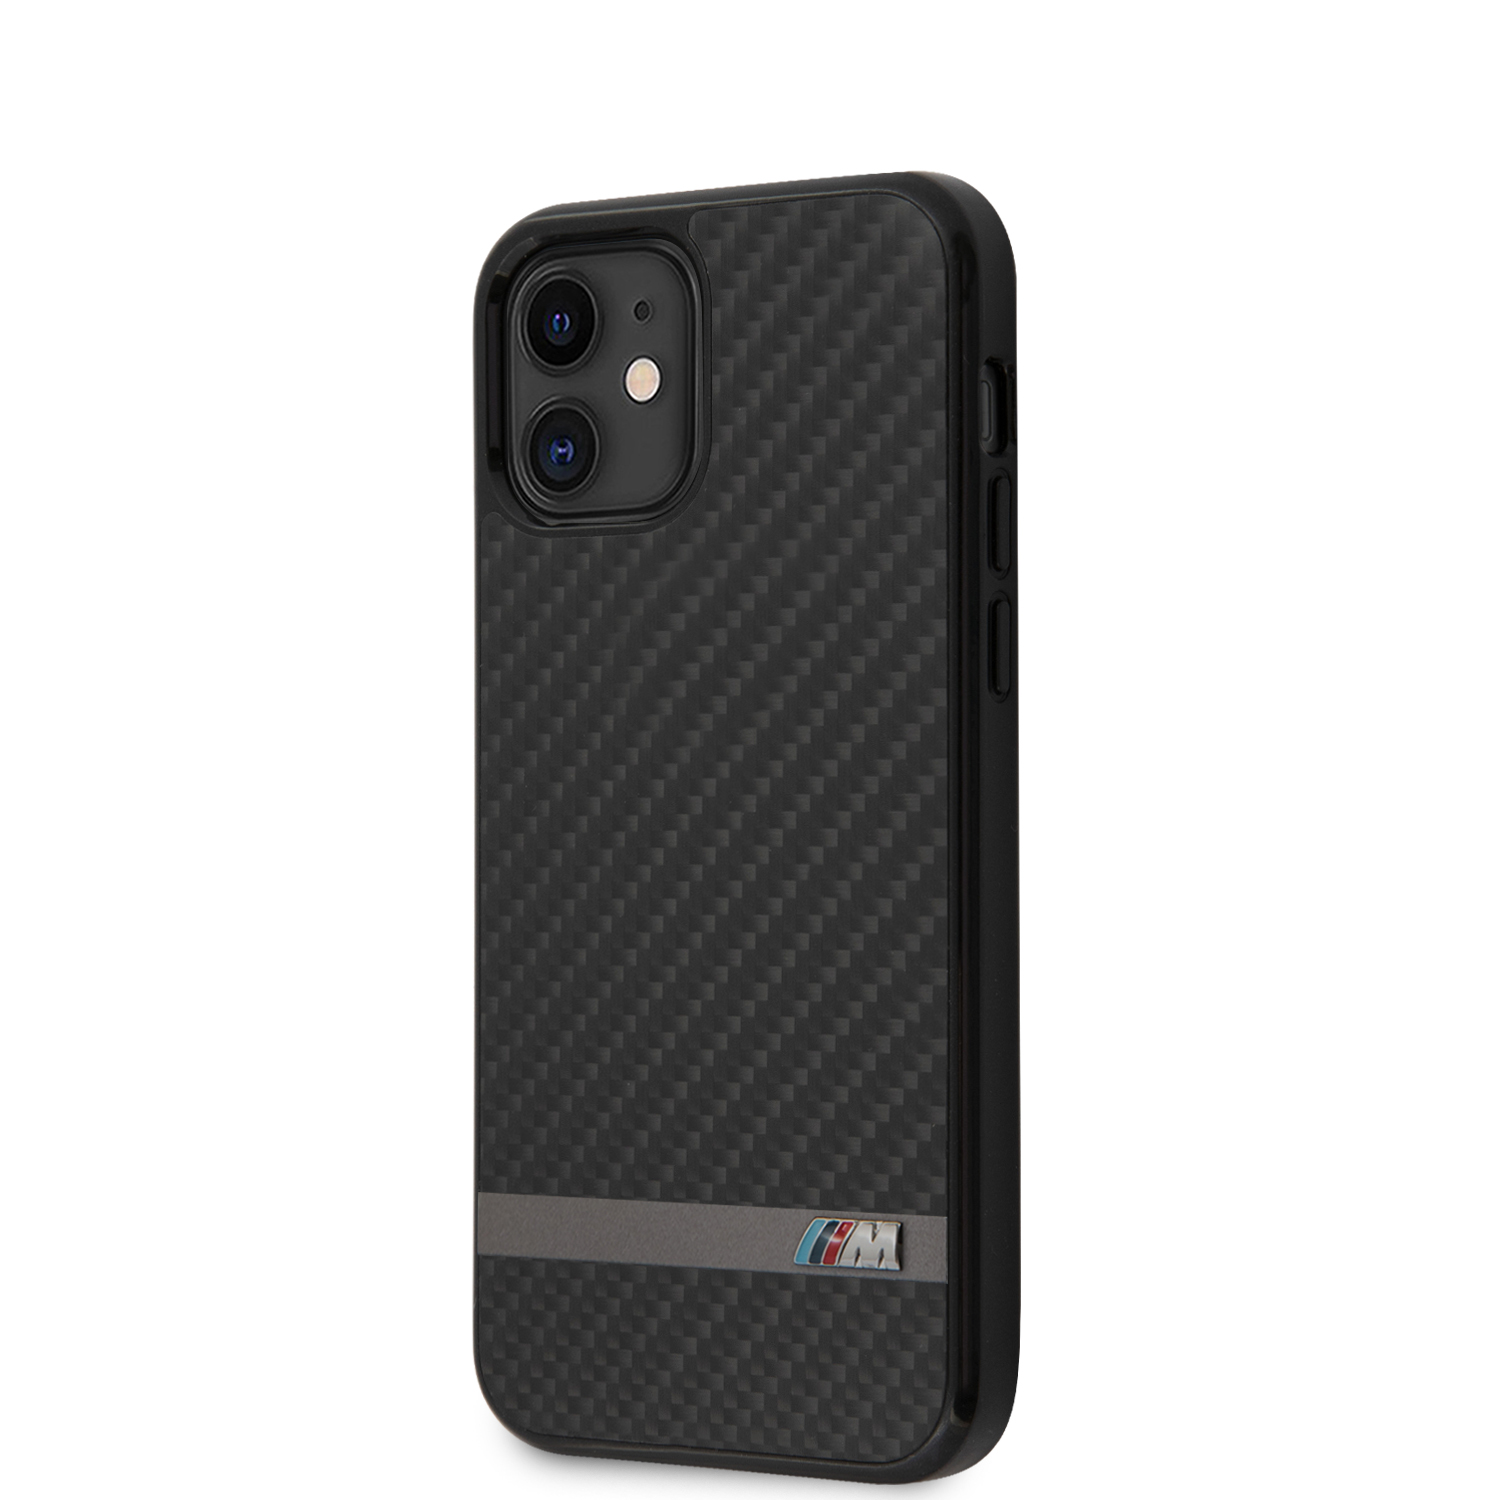 BMW Carbon & Alu zadní kryt BMHCP12SASCFBK Apple iPhone 12 mini black